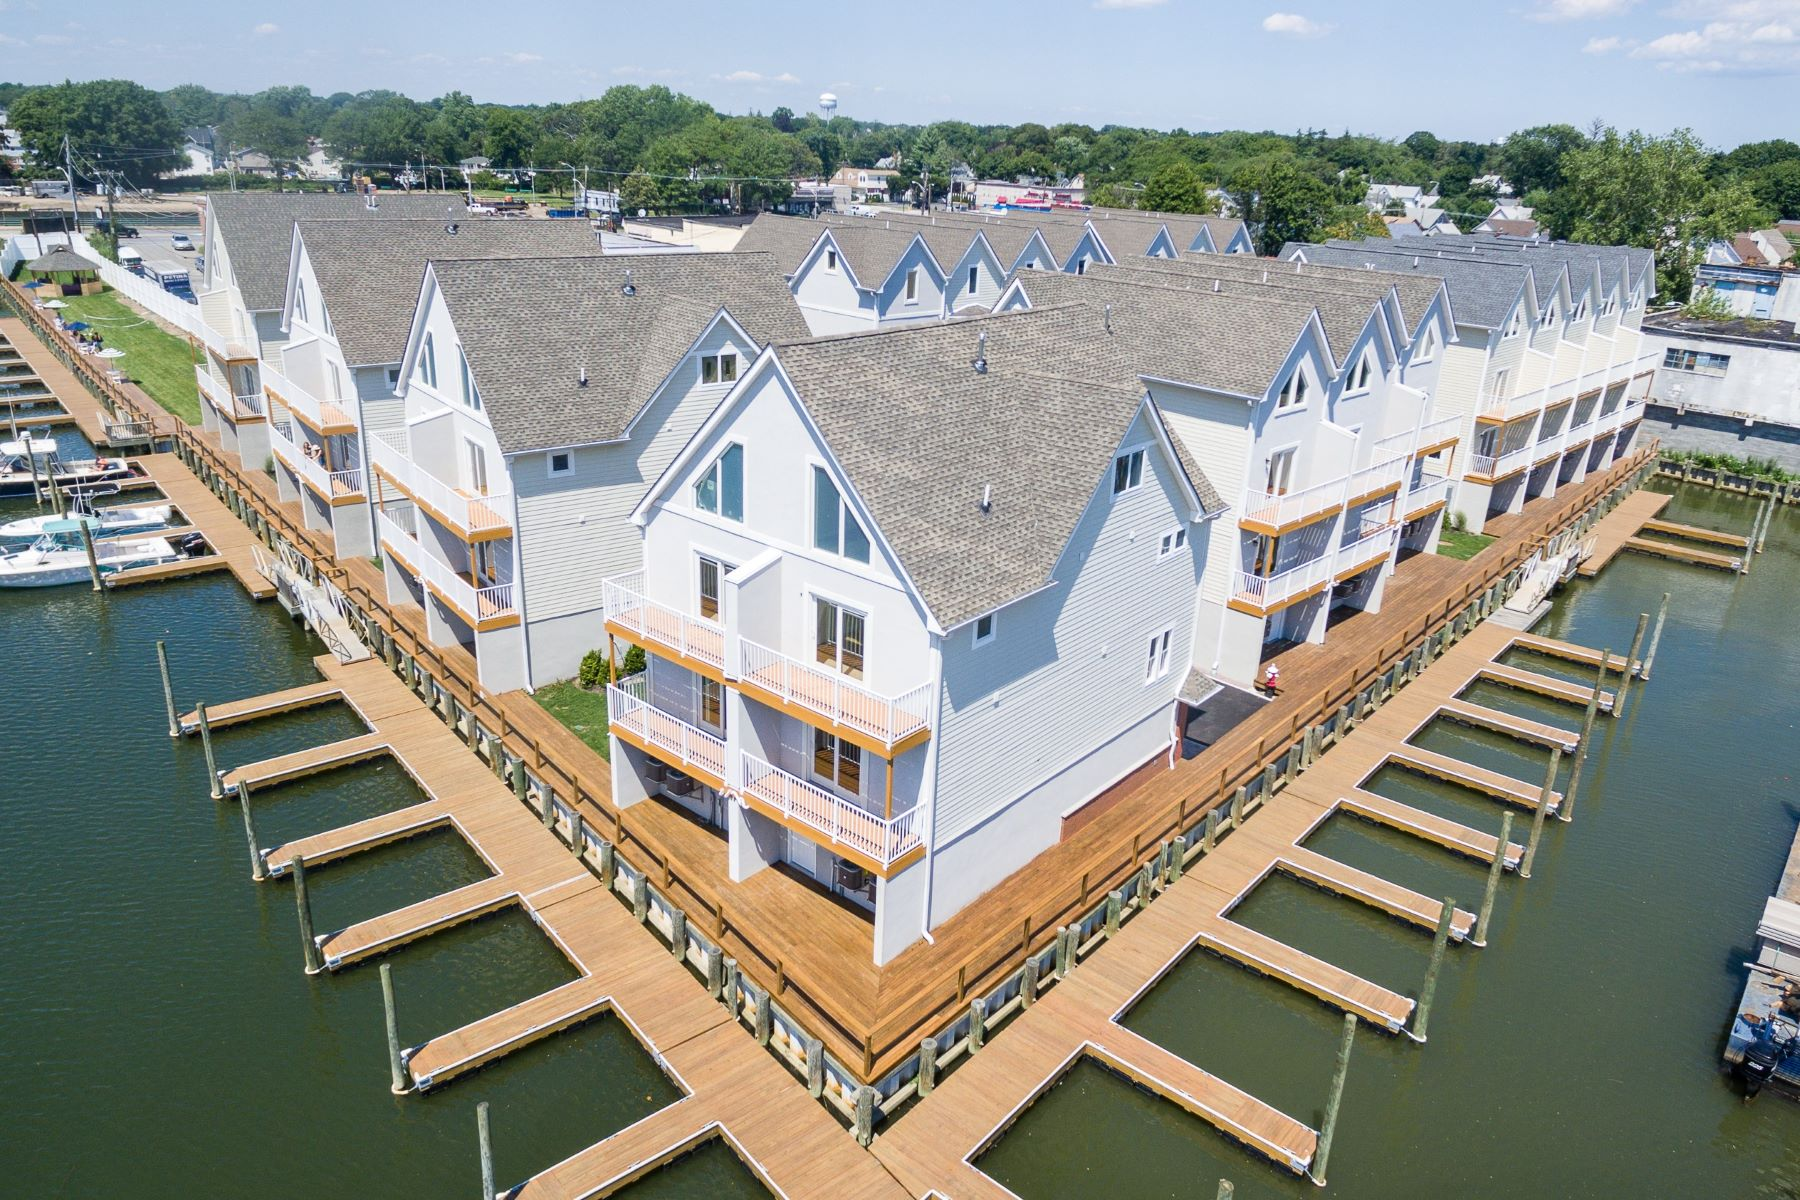 Condominium for Sale at Condo Yachtsman's Cove 22 Freeport, New York 11520 United States